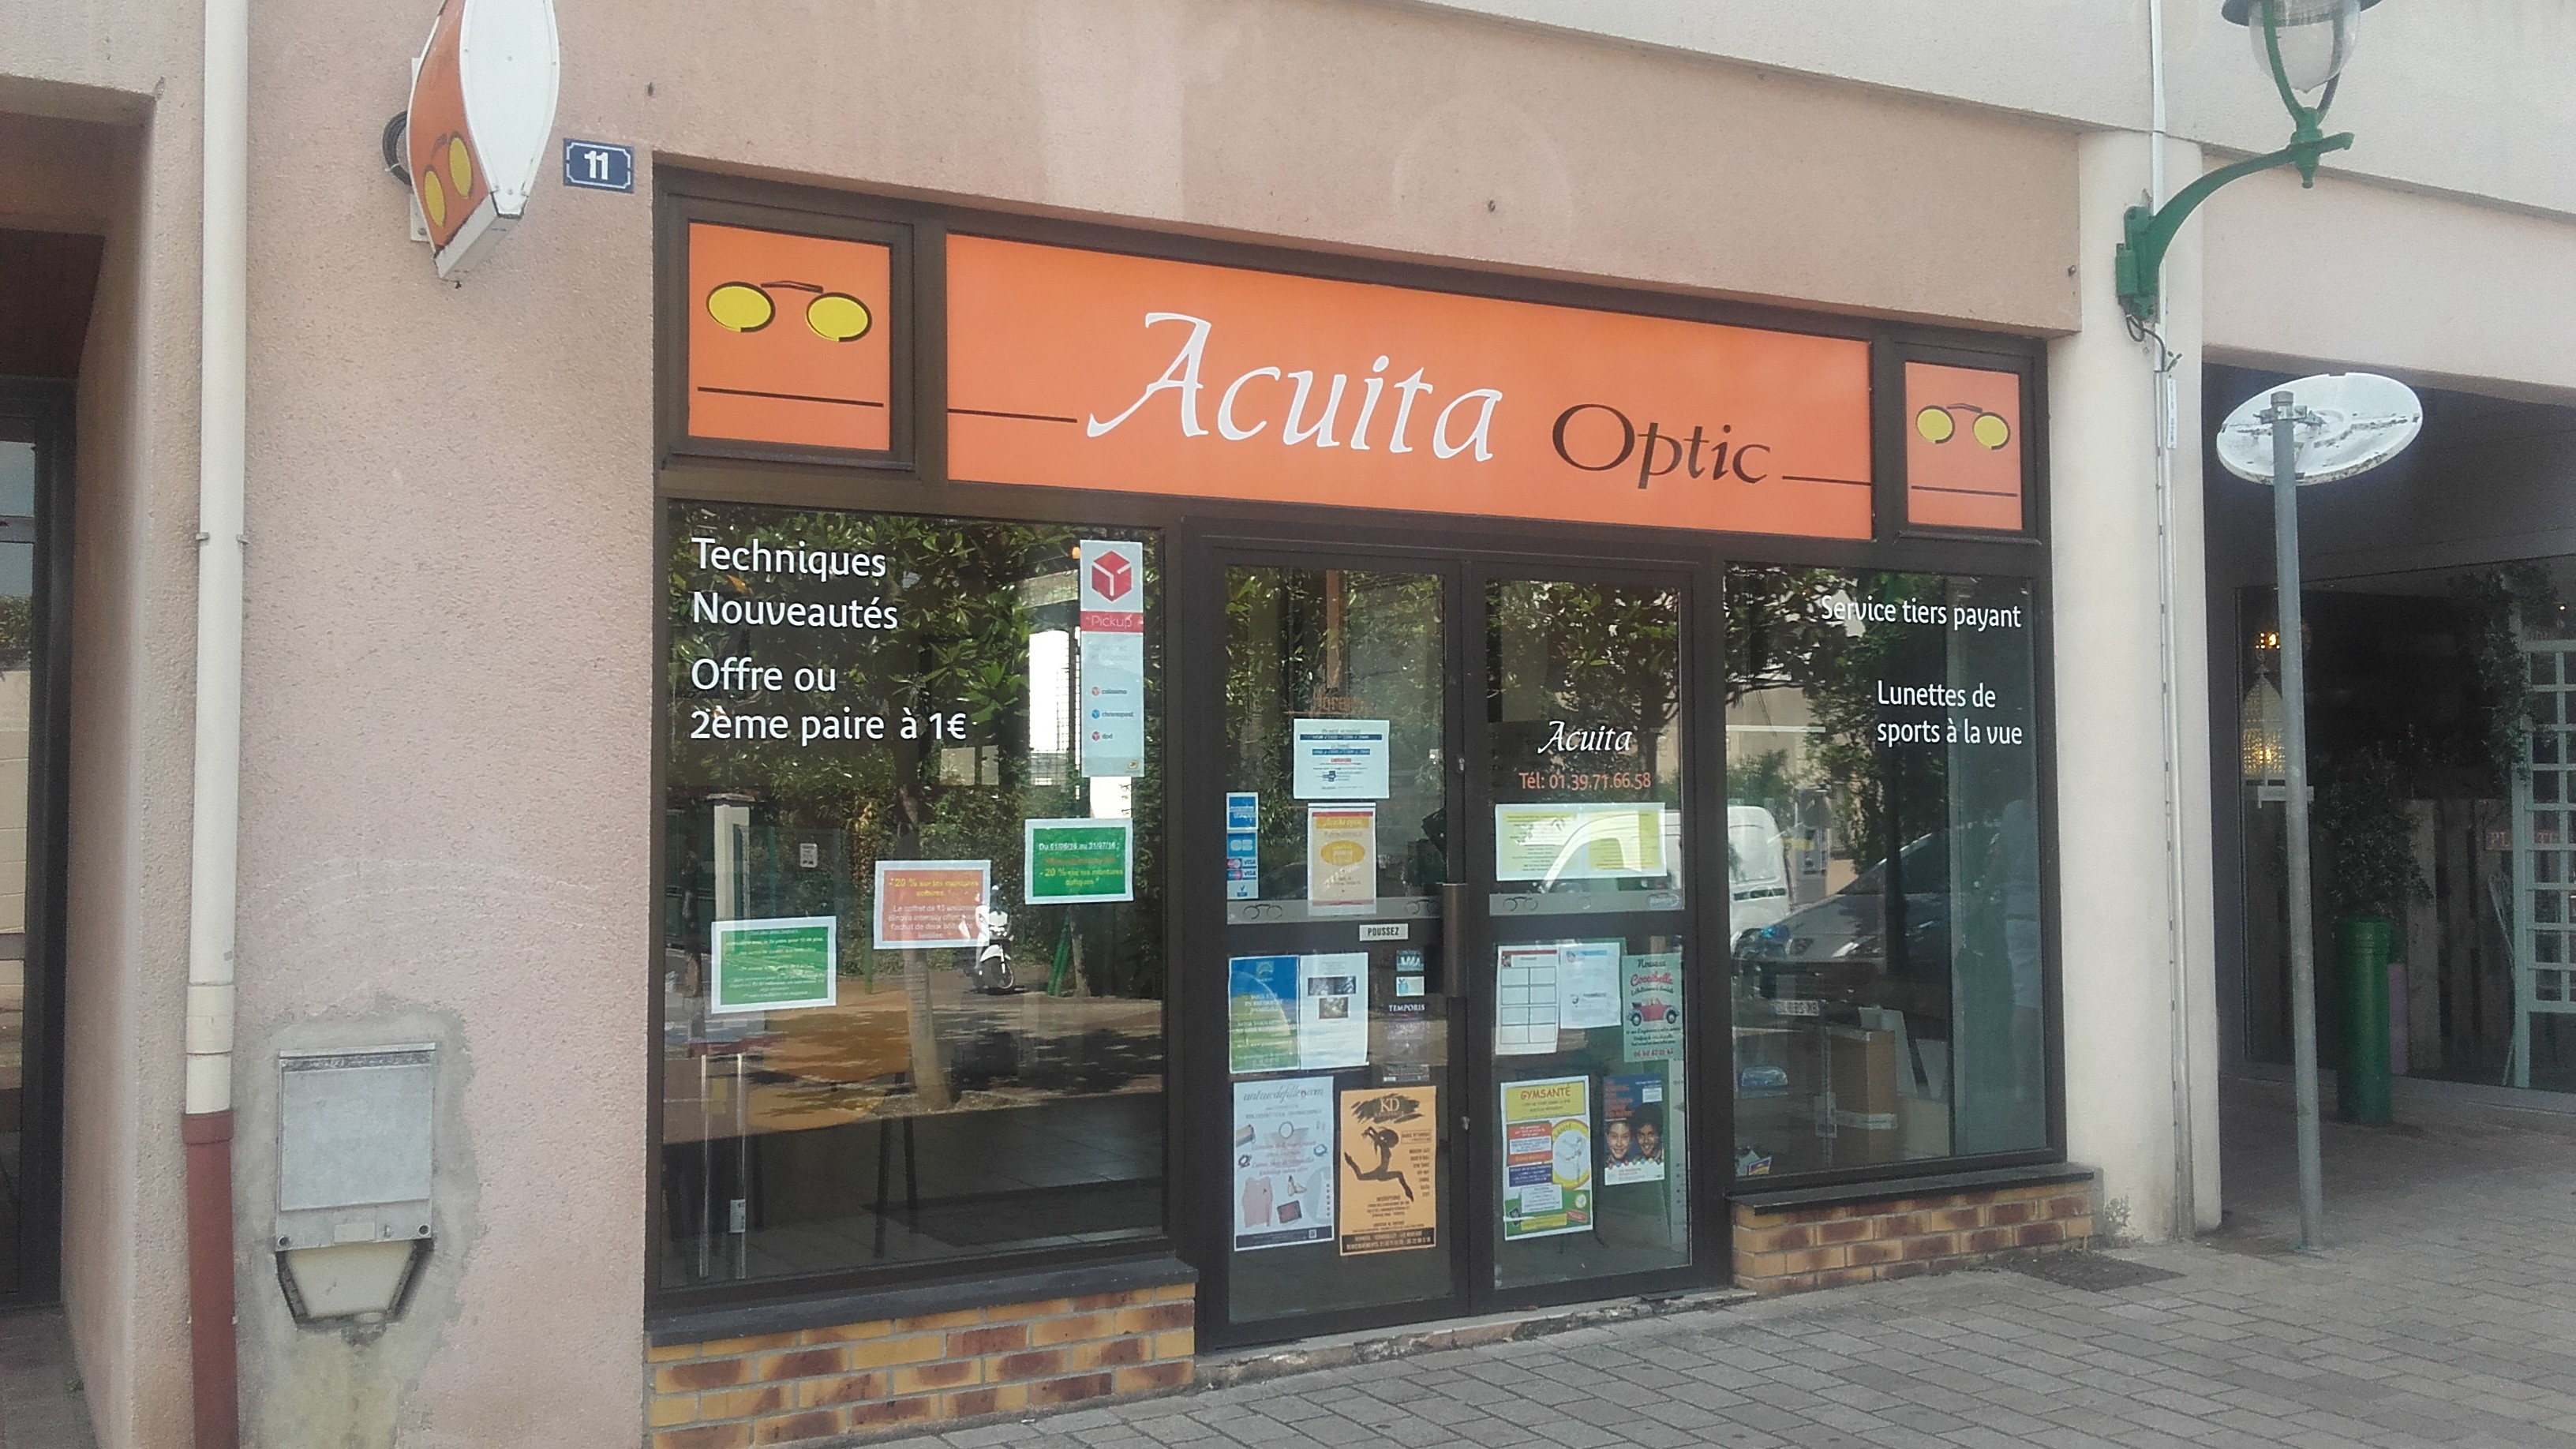 Acuita Optic dans le centre ville de Vernouillet